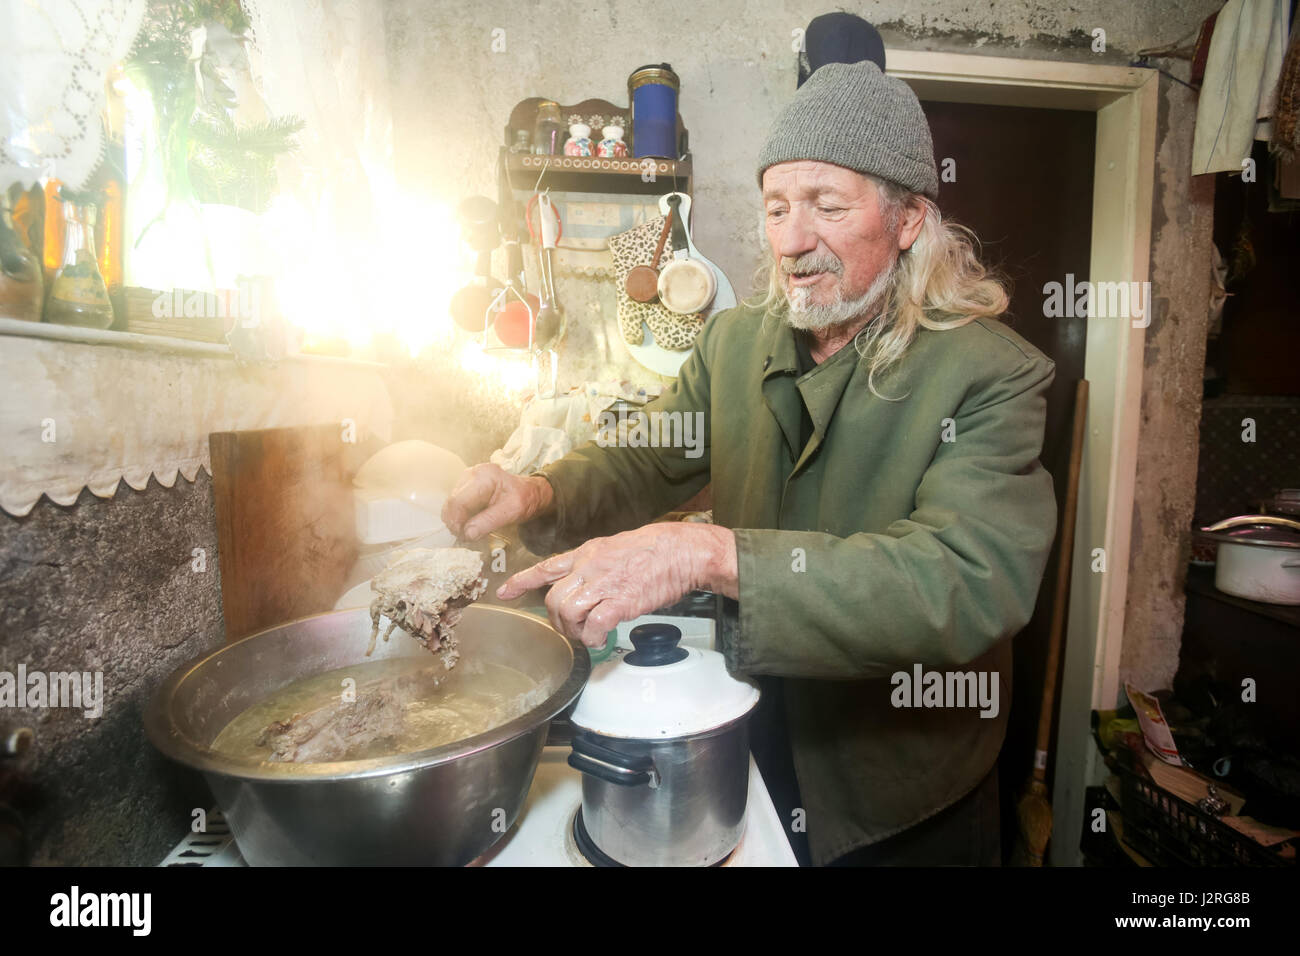 An old man boiling pork meat on the stove and showing a piece of meat on a fork. Stock Photo